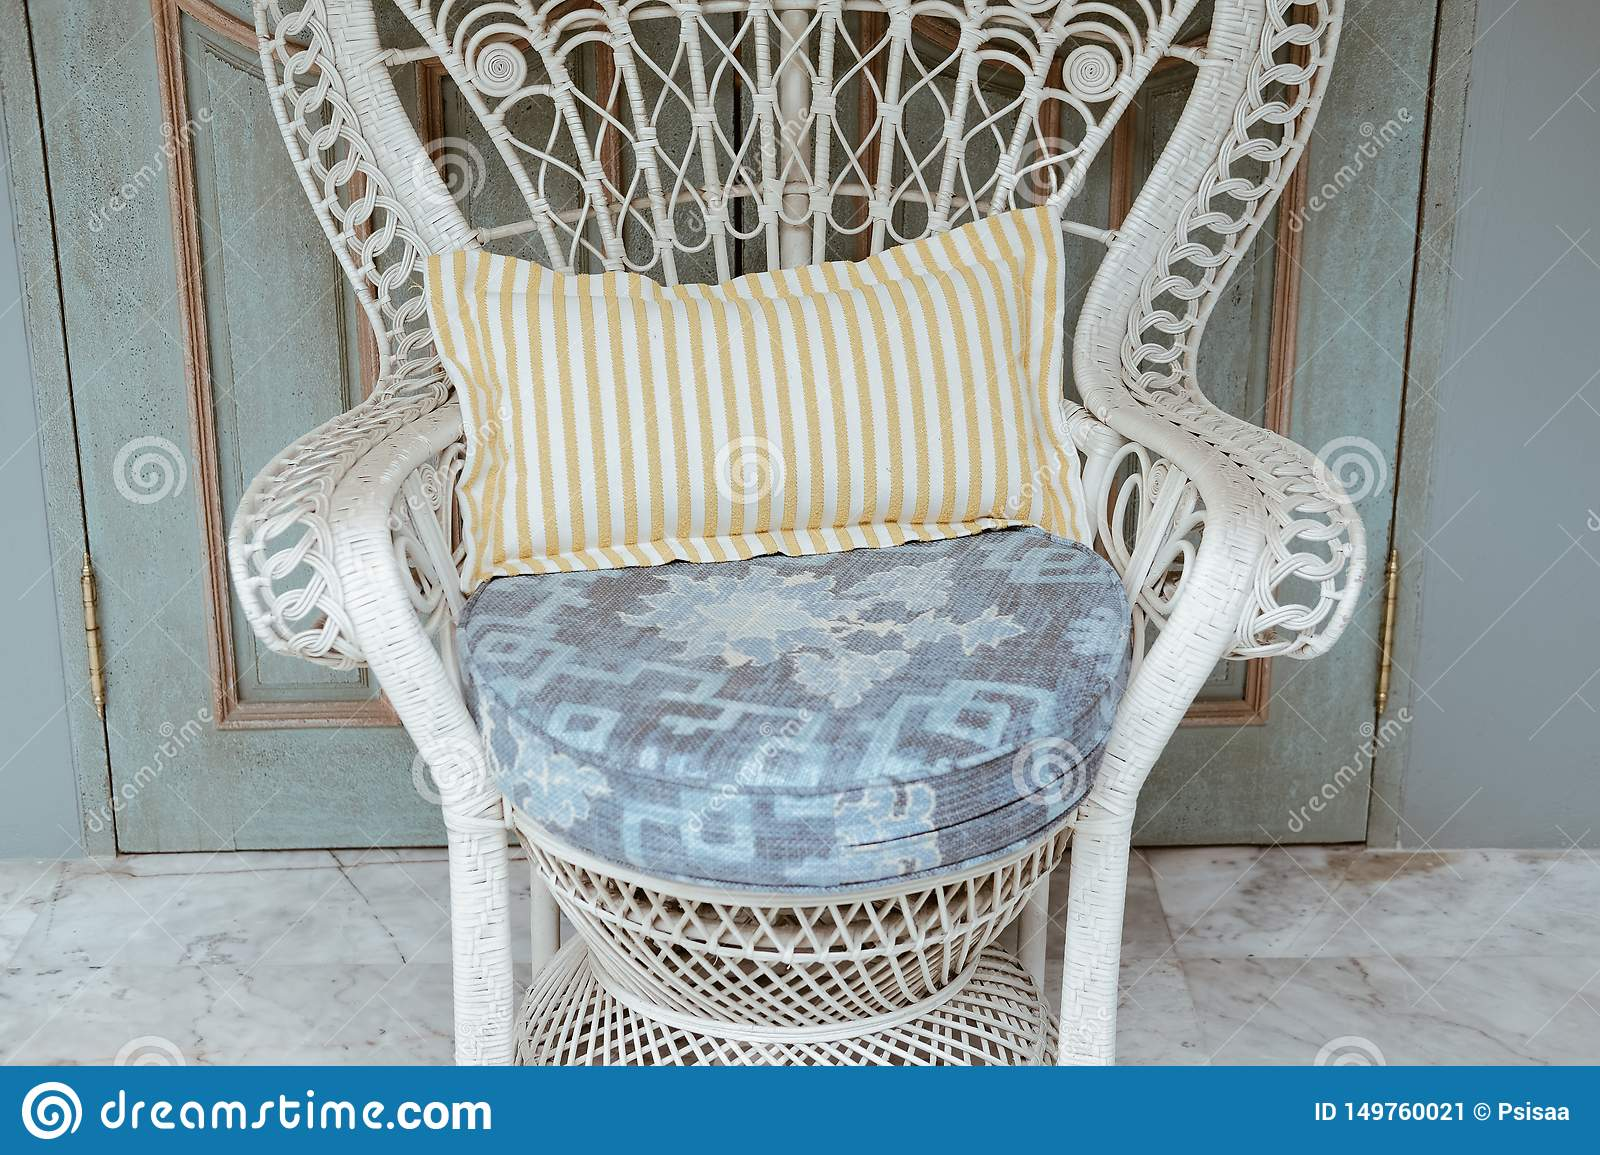 White Rattan Chair In Terrace Balcony Living Design For Home Interior Stock Image Image Of Cushion Relax 149760021